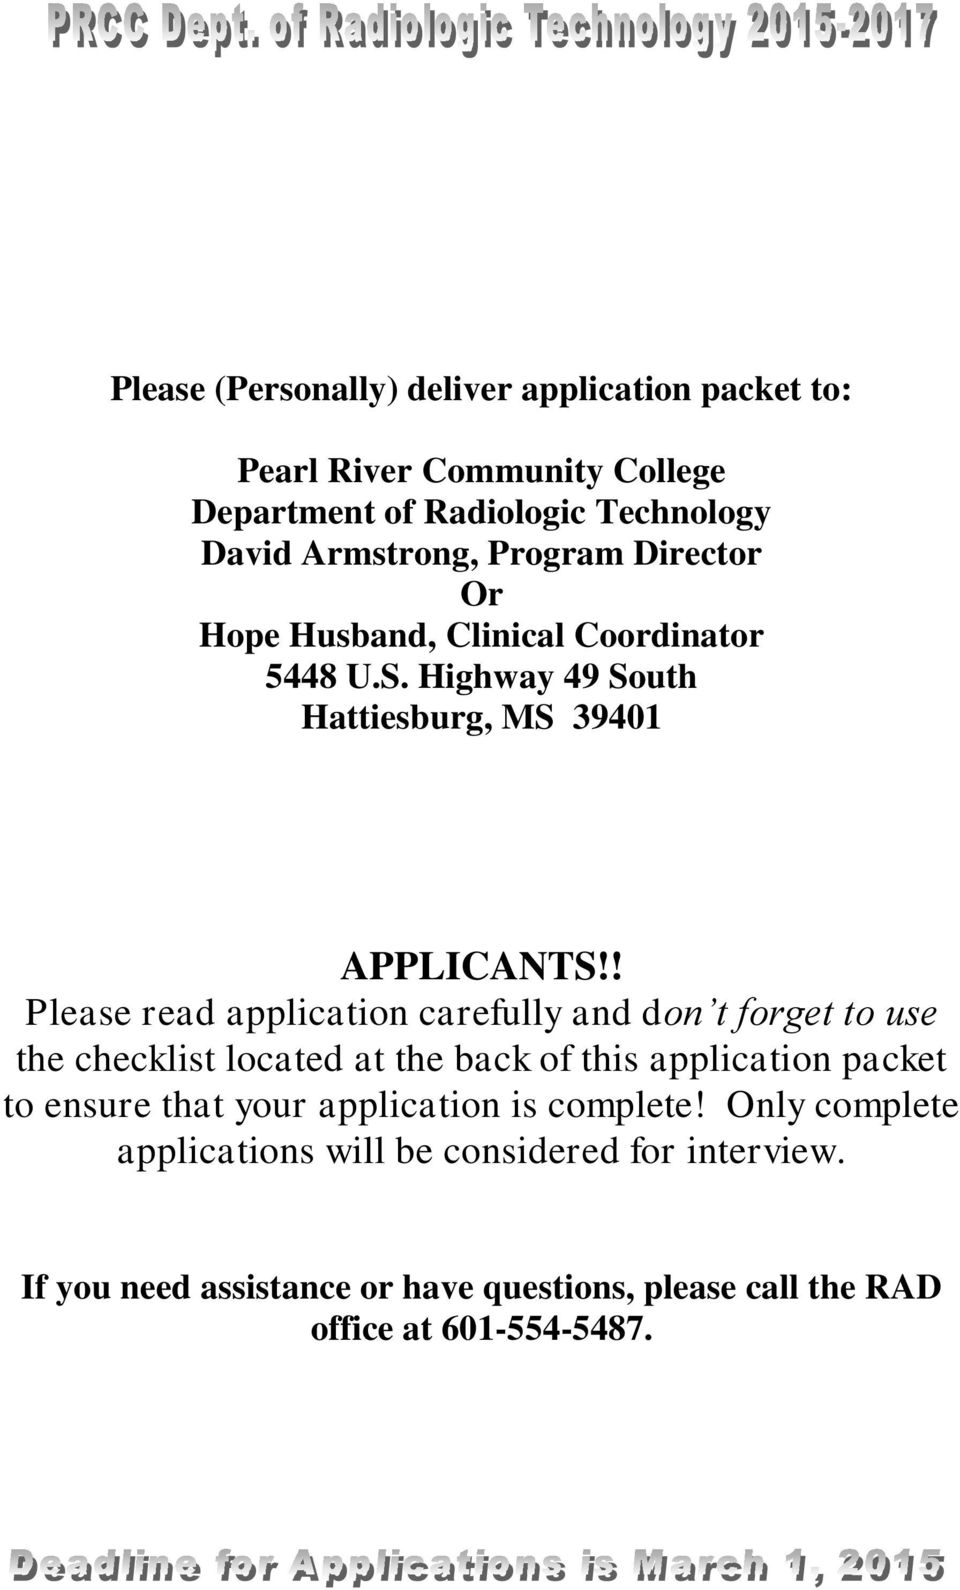 ! Please read application carefully and don t forget to use the checklist located at the back of this application packet to ensure that your